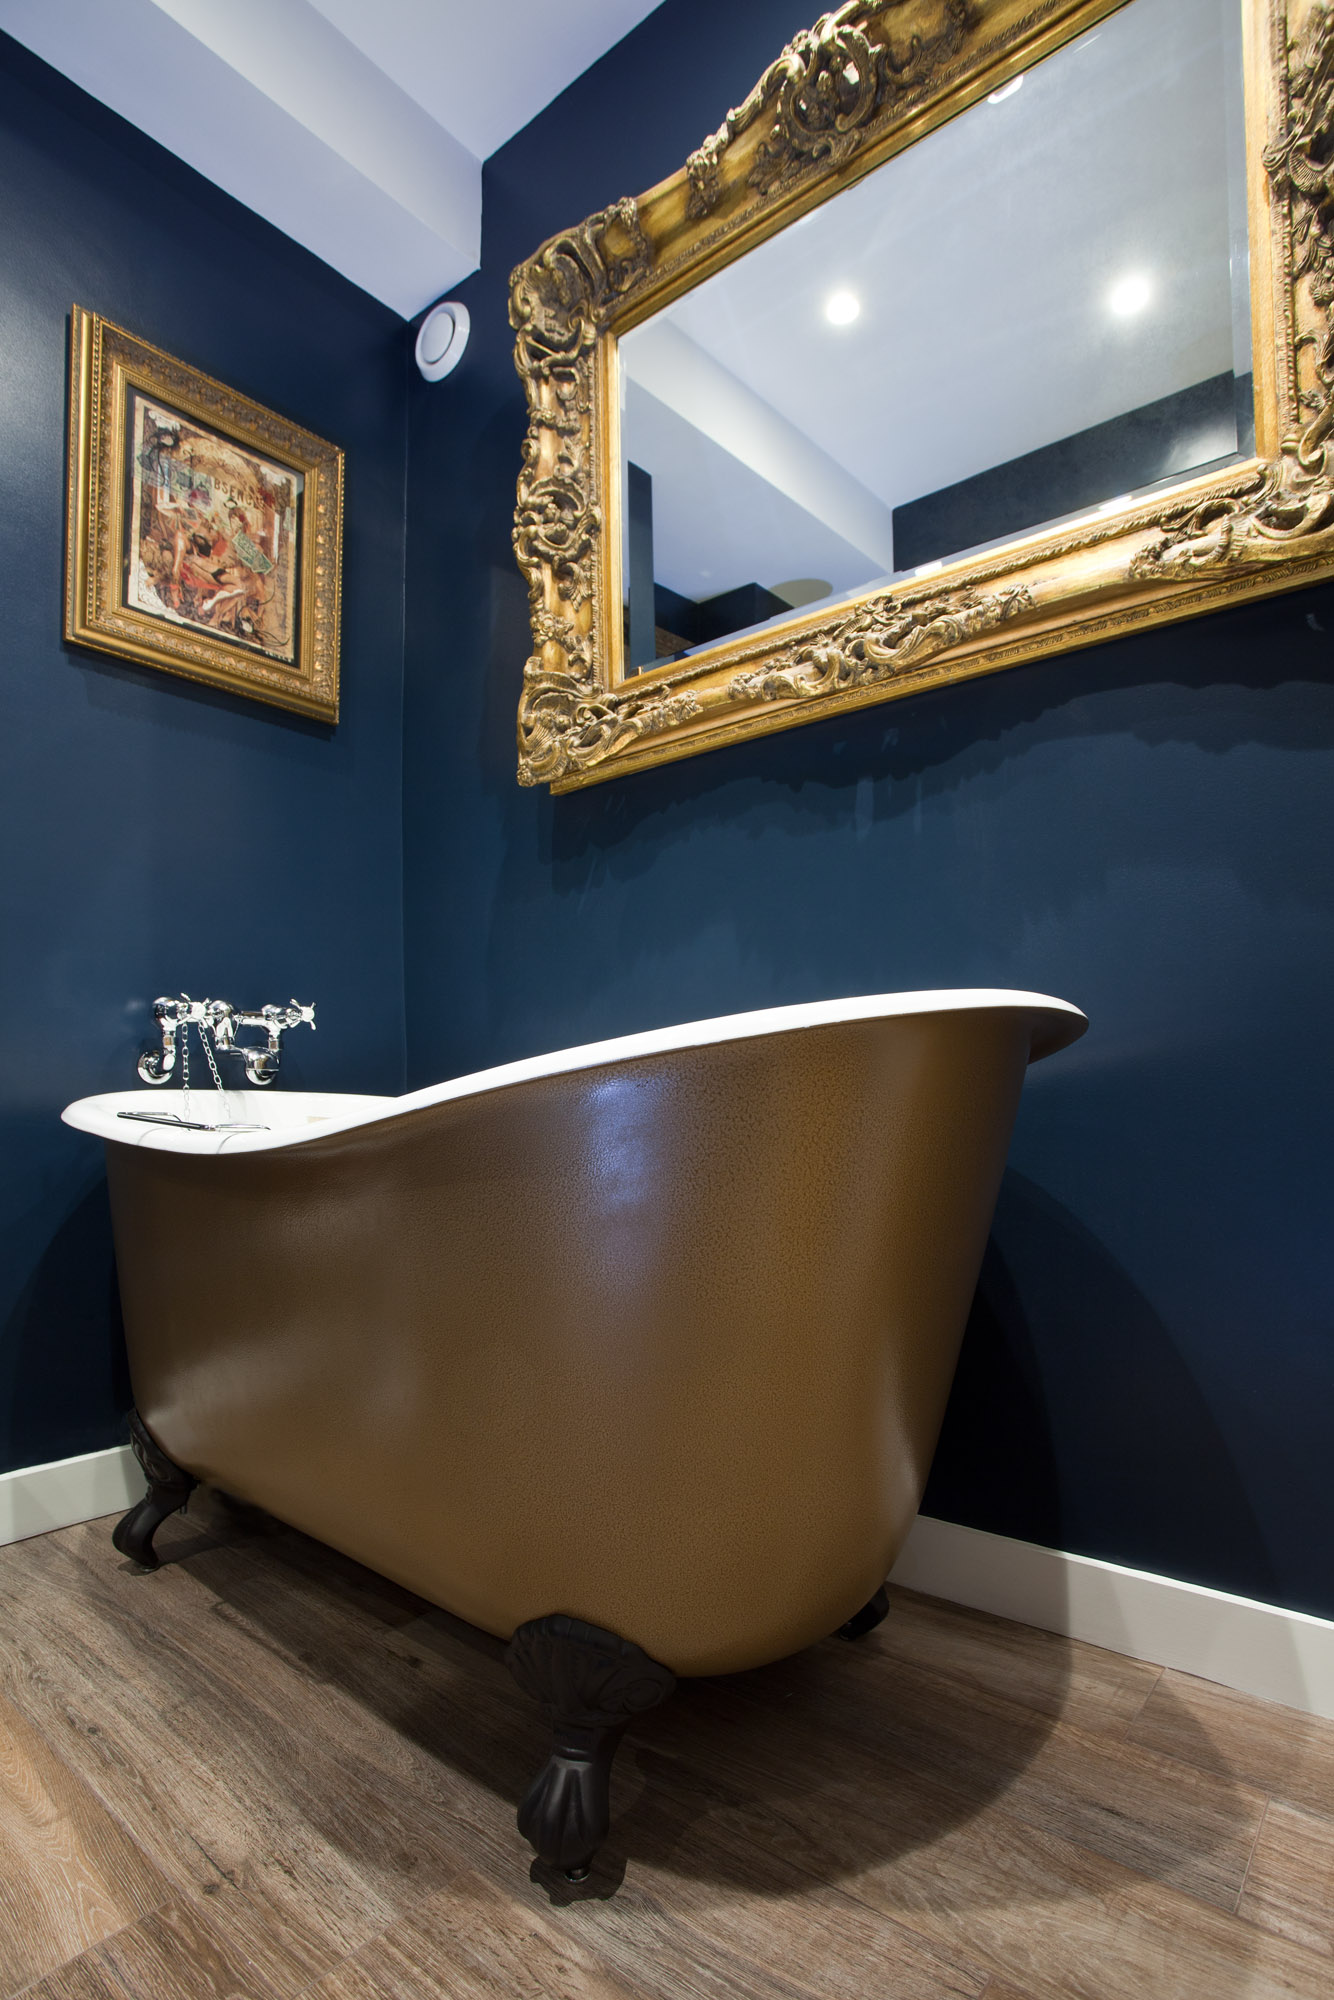 Creating wow factor with freestanding baths | The Brighton Bathroom ...